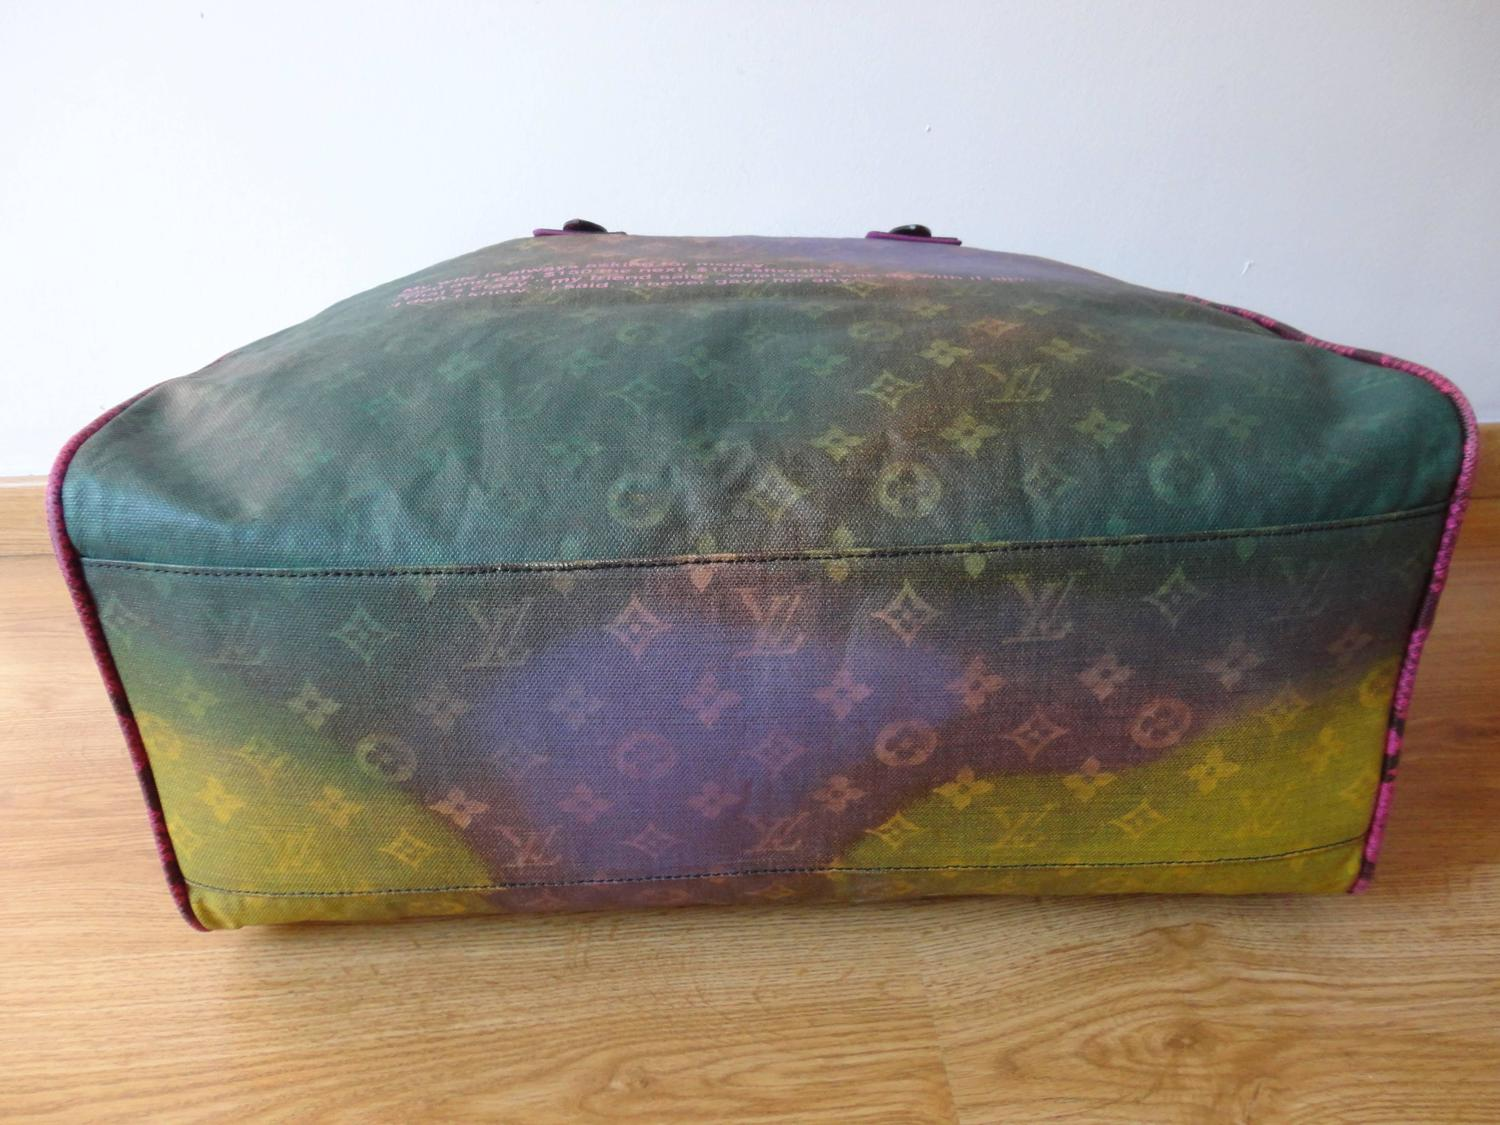 Rare Richard Prince x Louis Vuitton Tote For Sale at 1stdibs